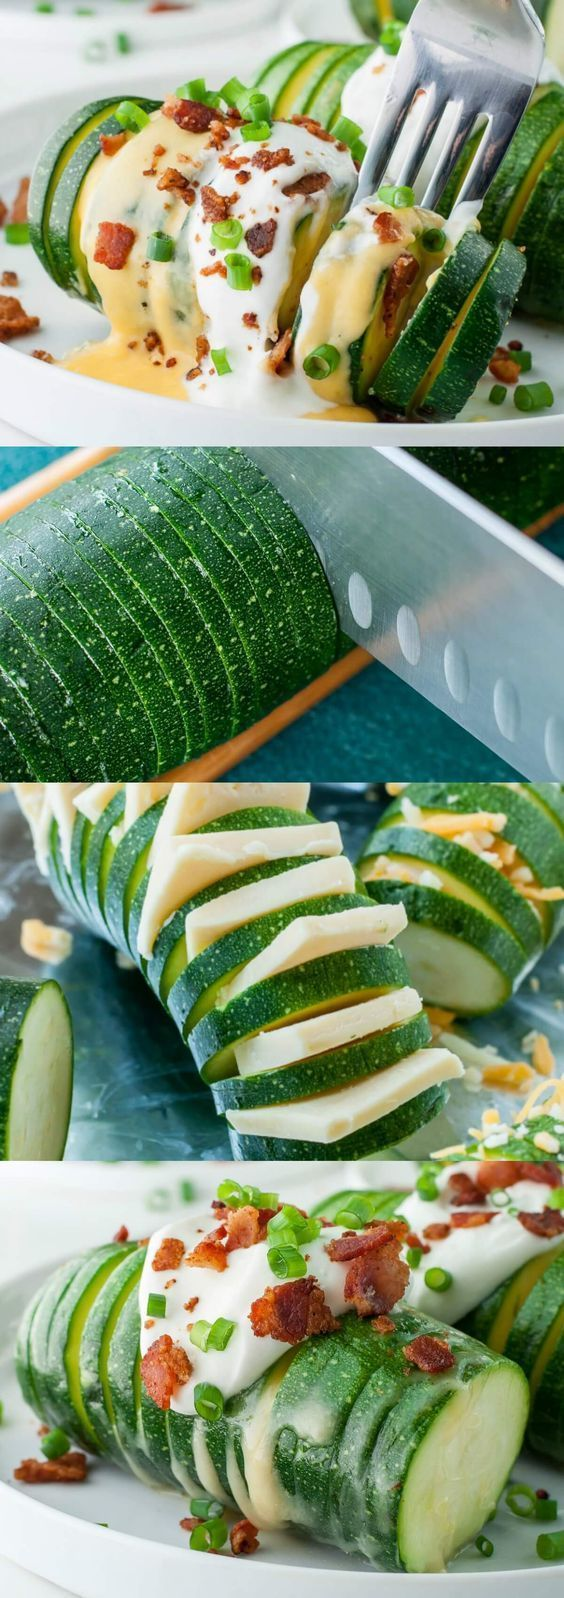 These Loaded Hasselback Zucchini are a dream come true! This tasty foil-baked side is sure to impress and SO easy to make